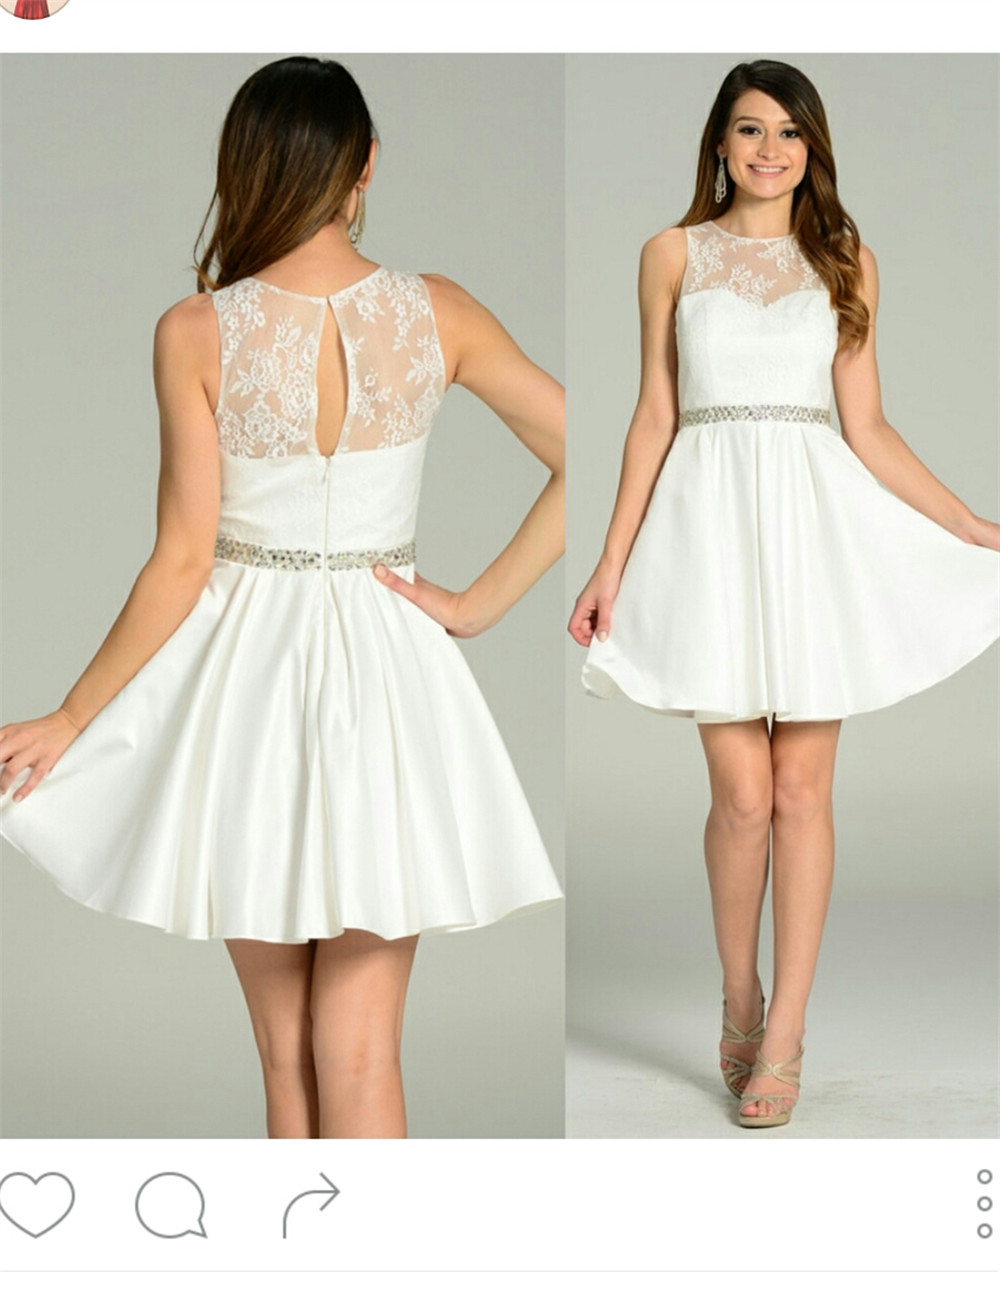 Compare Prices on Junior Homecoming Dresses- Online Shopping/Buy ...